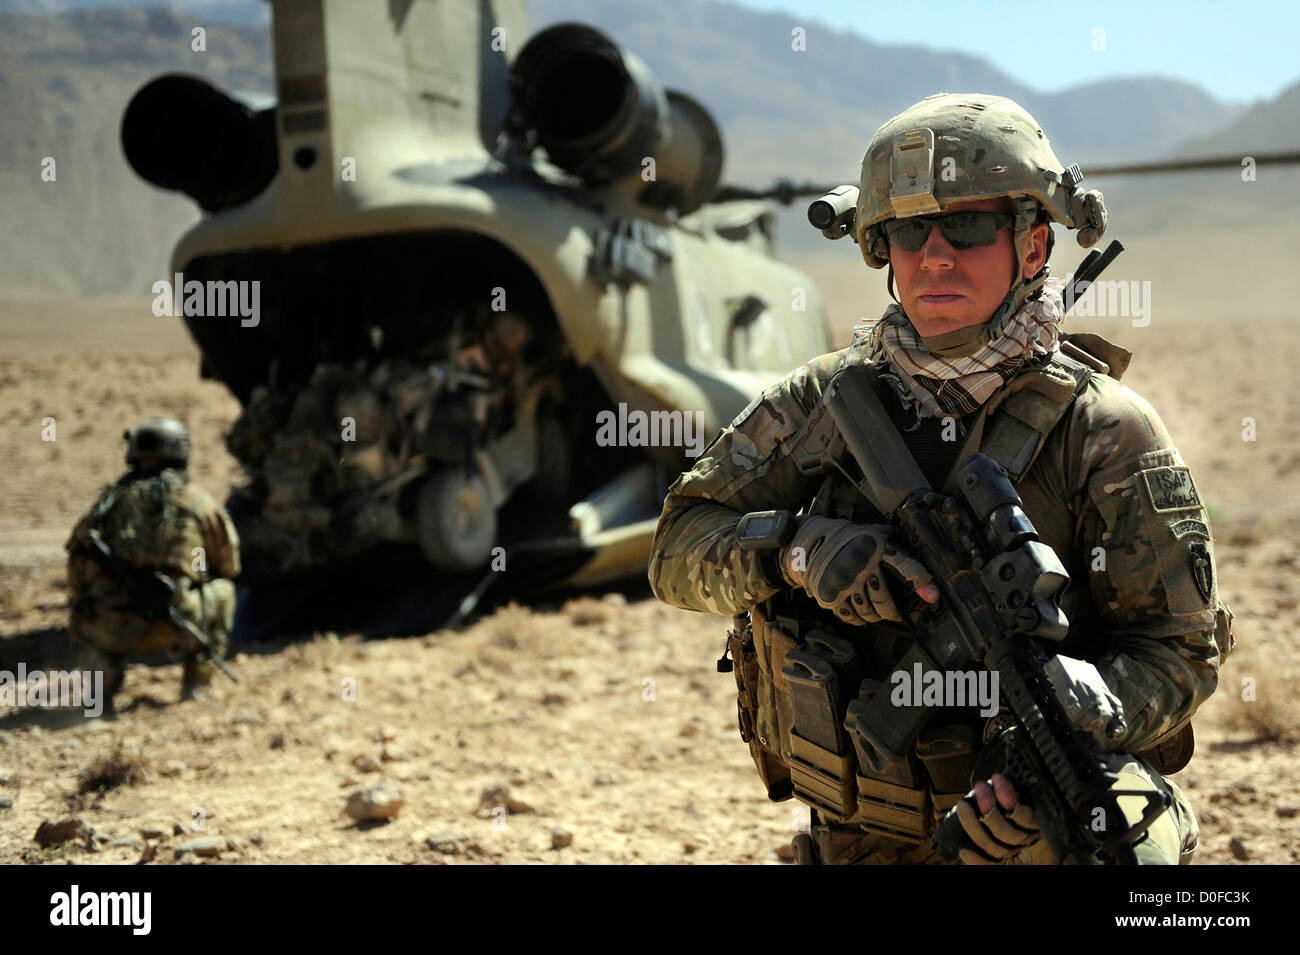 A US Army soldier secures the landing zone as his team loads a tactical vehicle into the cargo bay of a CH-47 Chinook - Stock Image